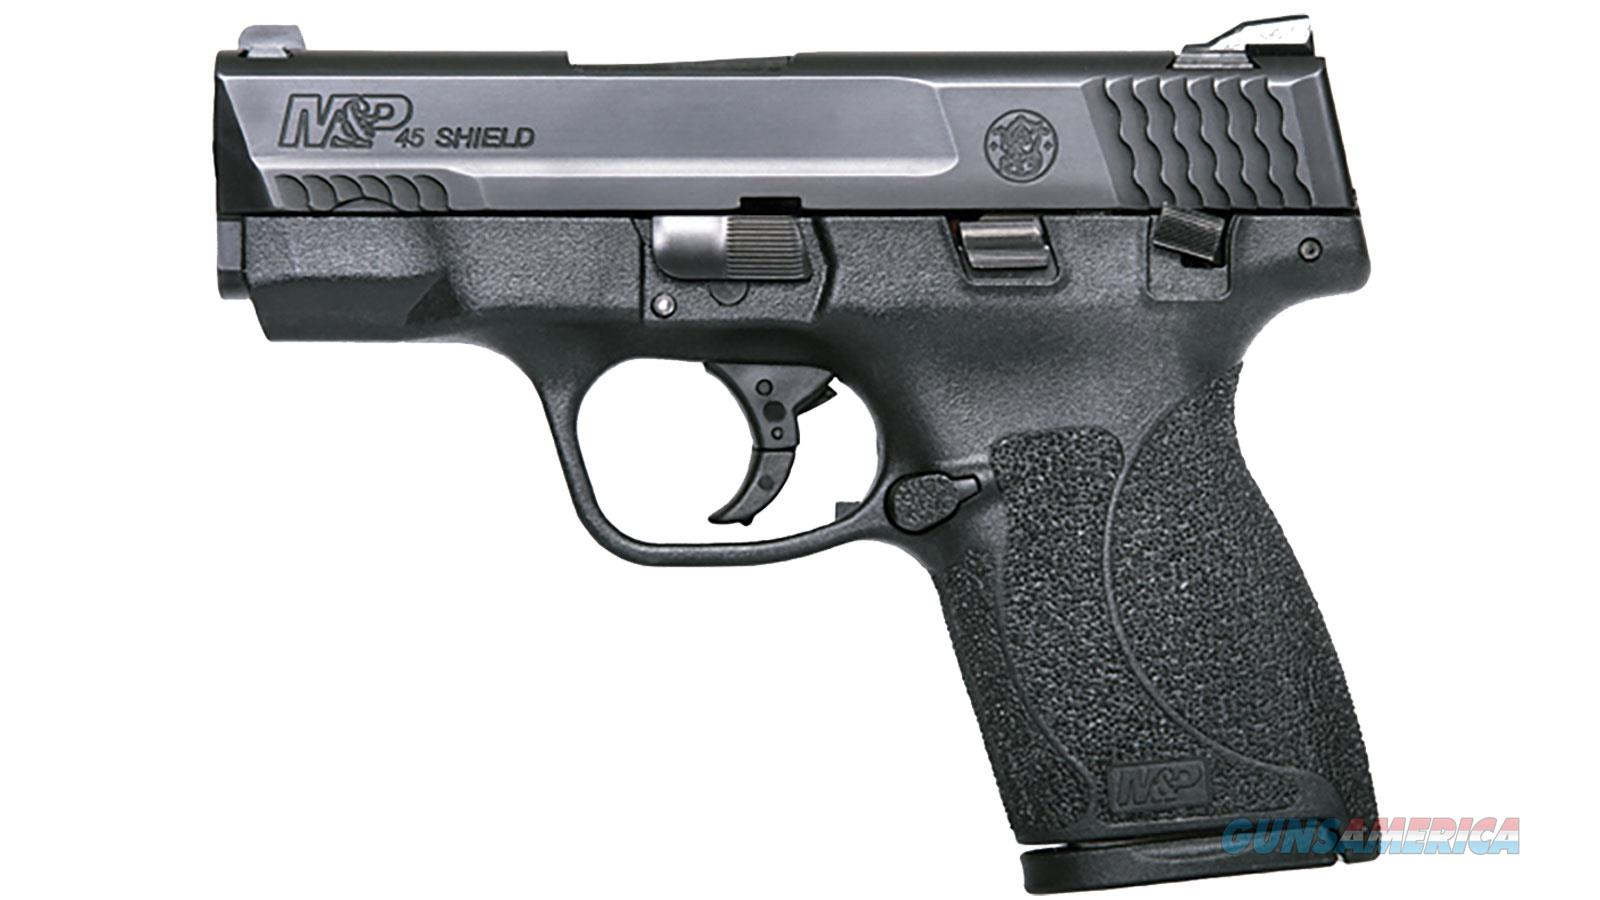 S&W M&P SHIELD 45ACP Pistol - $75 Rebate Available from S&W  Guns > Pistols > Smith & Wesson Pistols - Autos > Shield